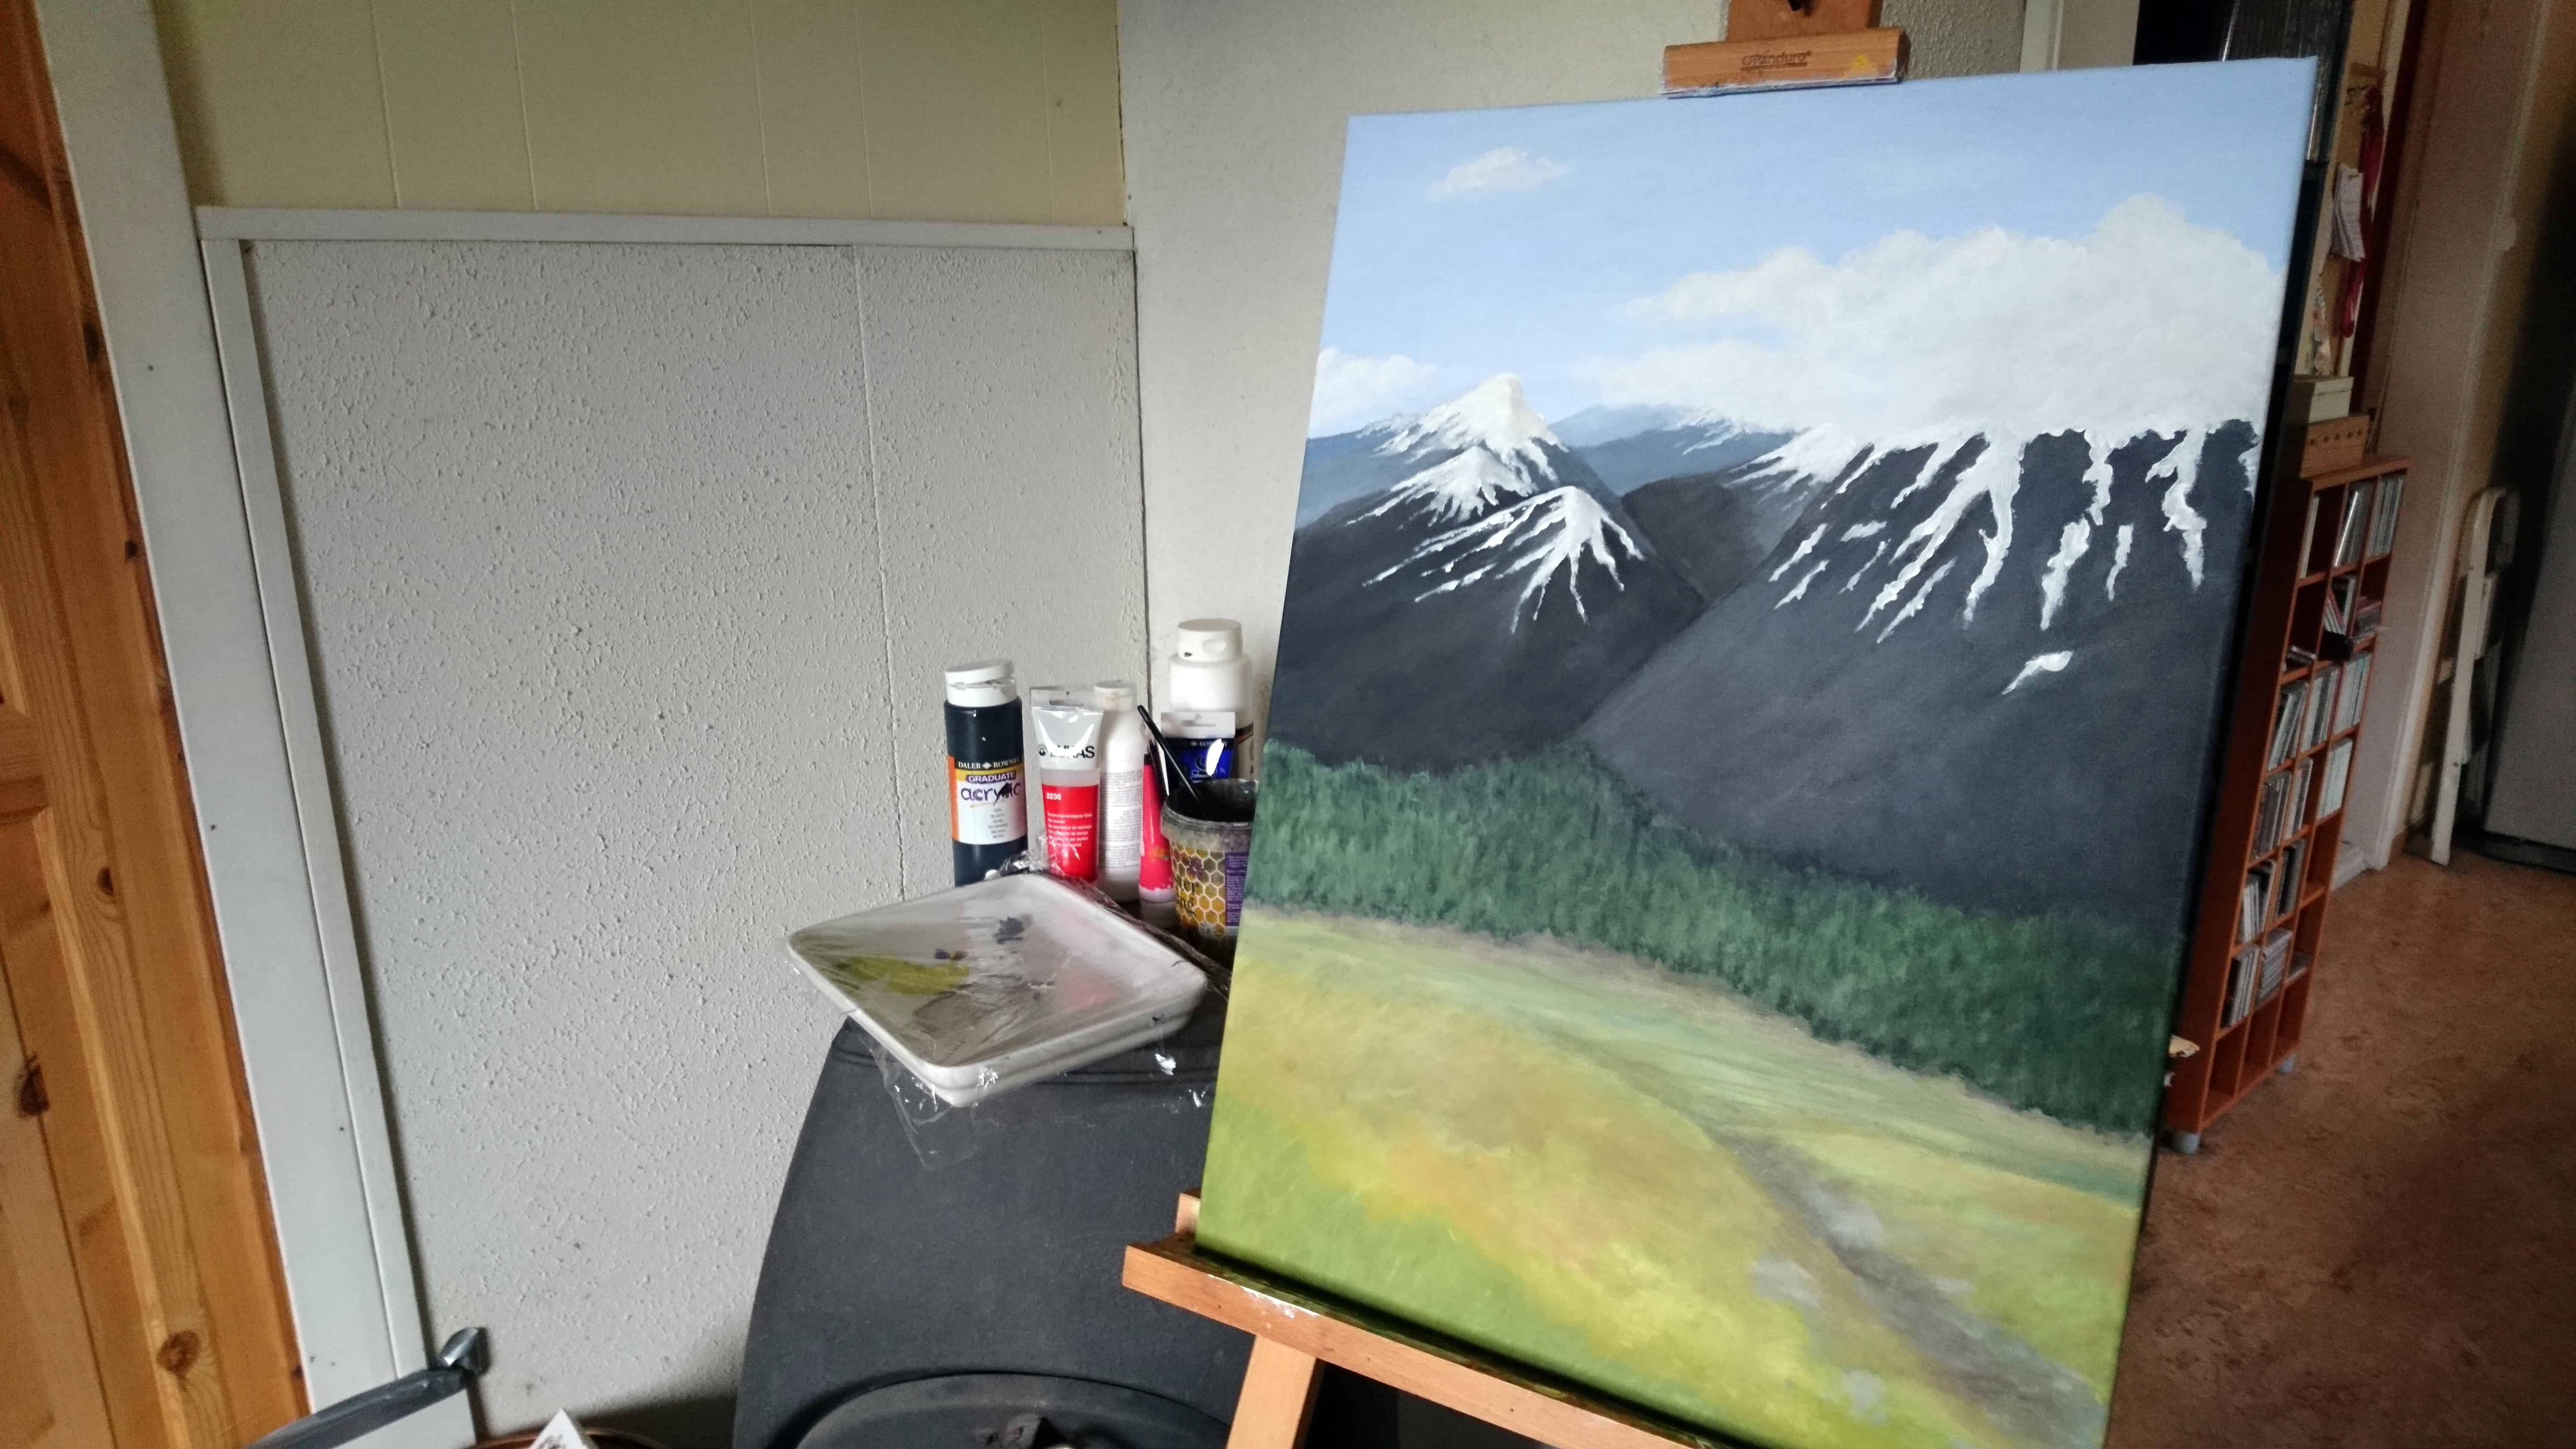 Jotunheim, on the easel